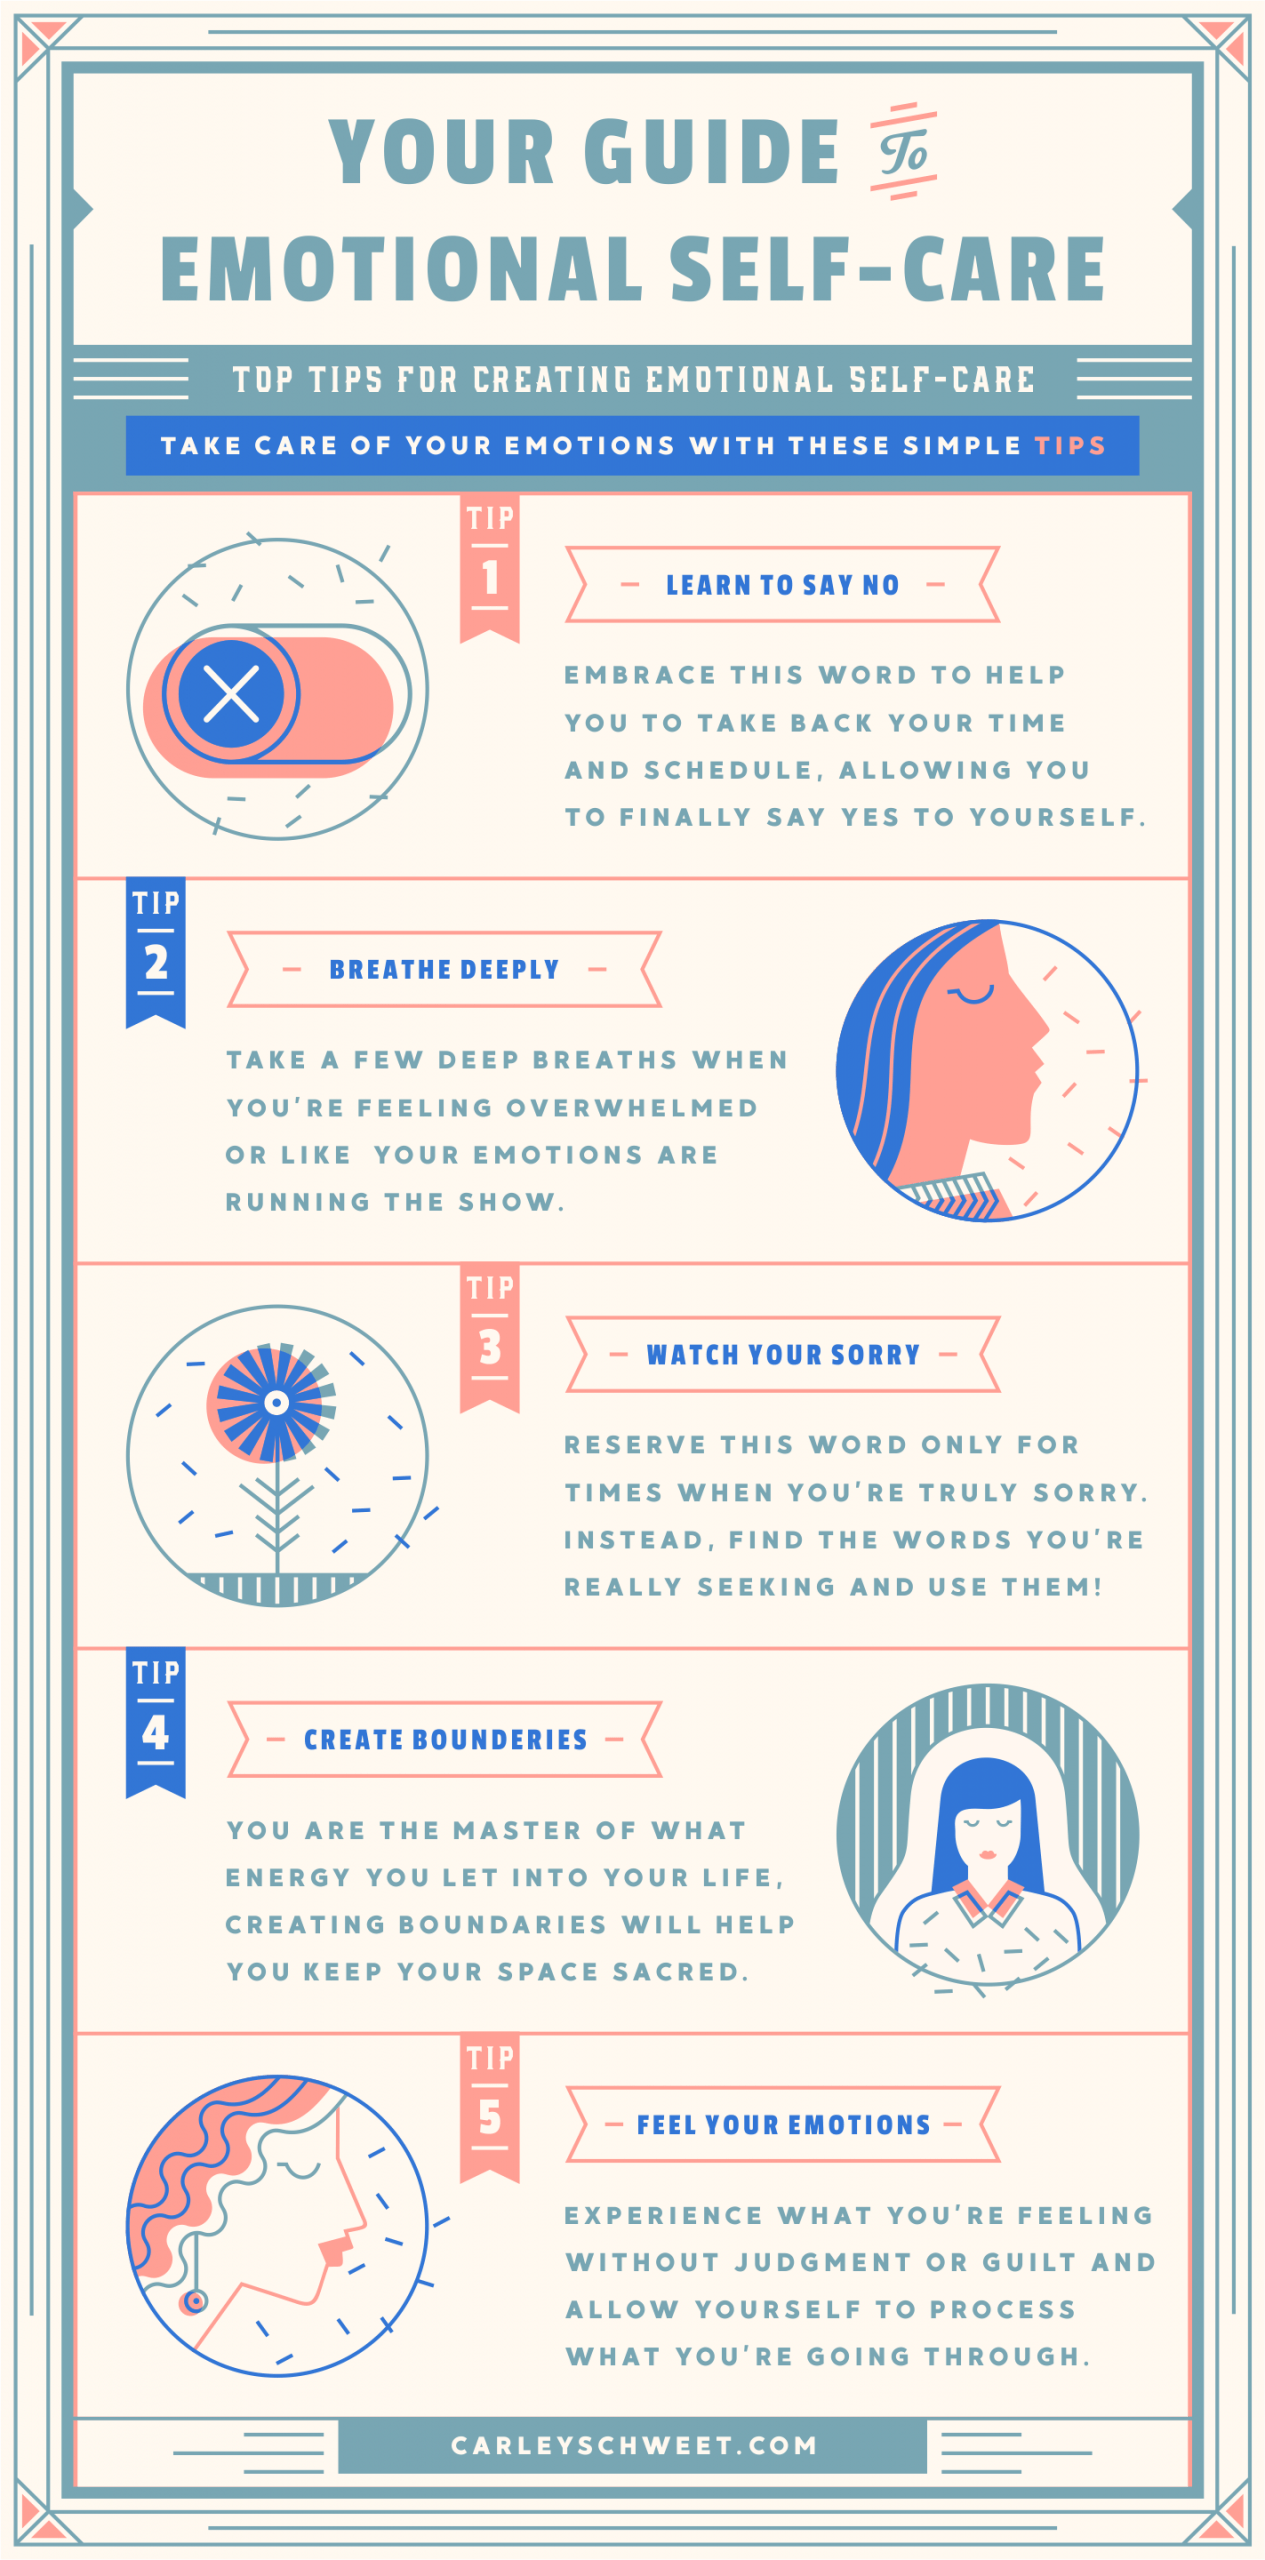 Your Guide To Emotional Self-Care